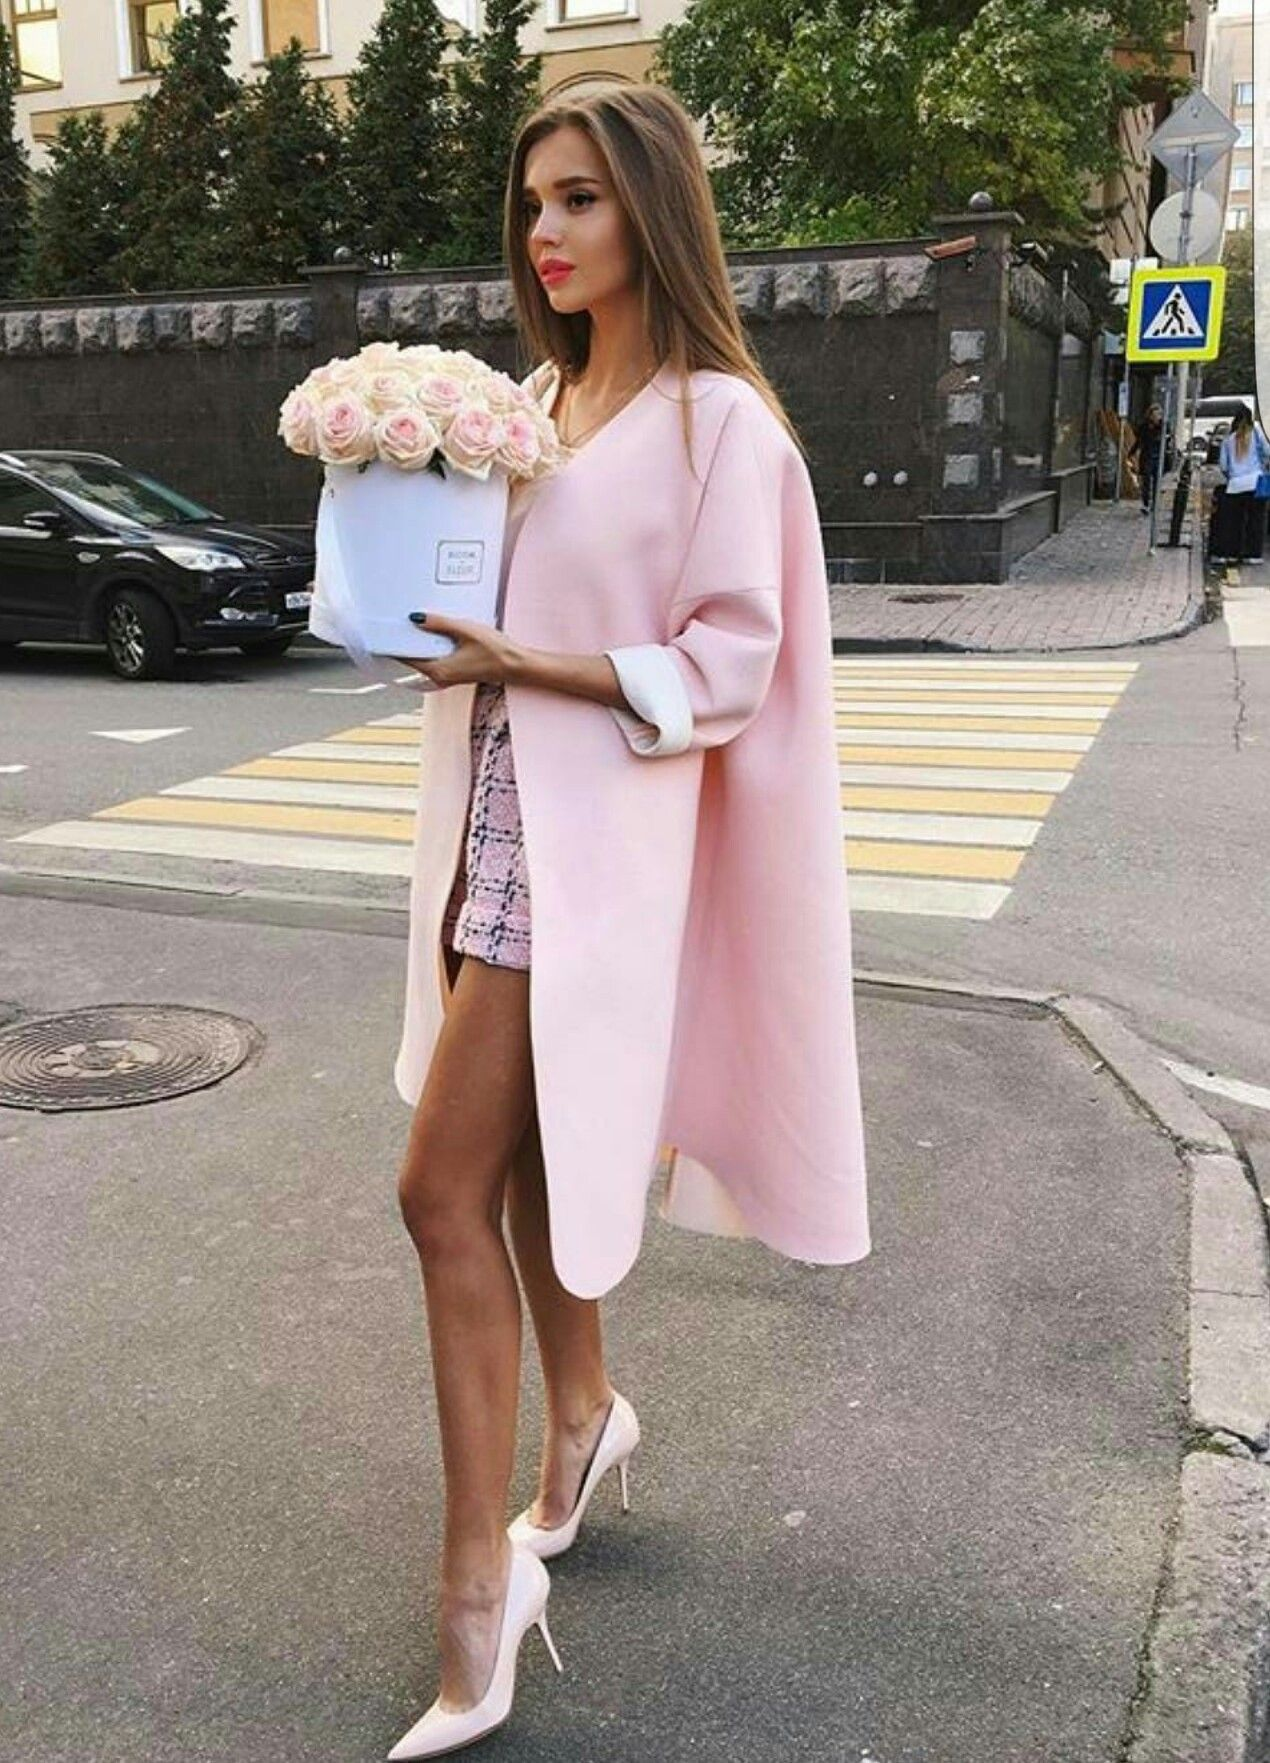 Pin by Csenge Orbán on outfits  Pinterest  Goal Clothes and Fashion